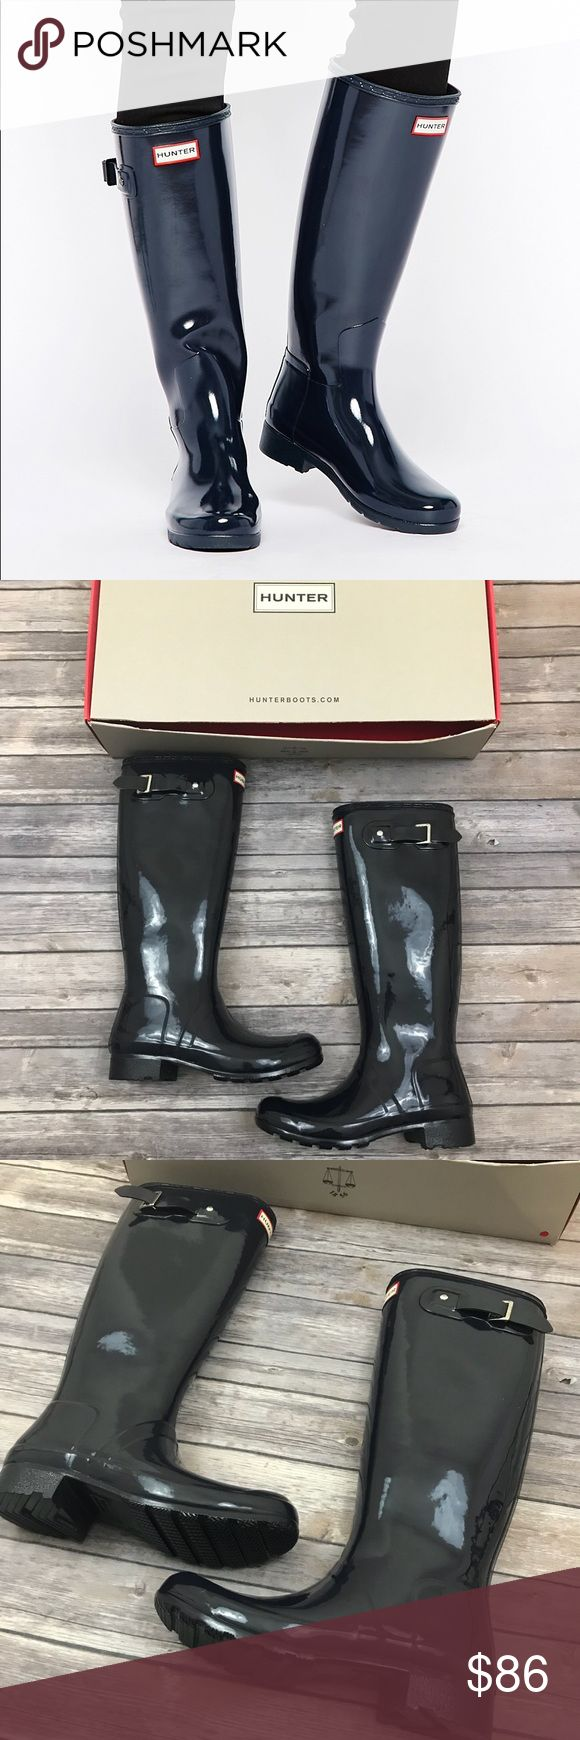 New Hunter Original Tall Gloss Rain Boots Hunter Original Tall Gloss Rain Boots •New in box (the top of the box has been cut, but is included) •Color: Midnight Navy •Size 8 •Retails for $150  Check out my other listings- Nike, adidas, Michael Kors, Kate Spade, Miss Me, Coach, Wildfox, Victoria's Secret, PINK, Under Armour, True Religion, Ugg Australia, Free People and more! Hunter Boots Shoes Winter & Rain Boots